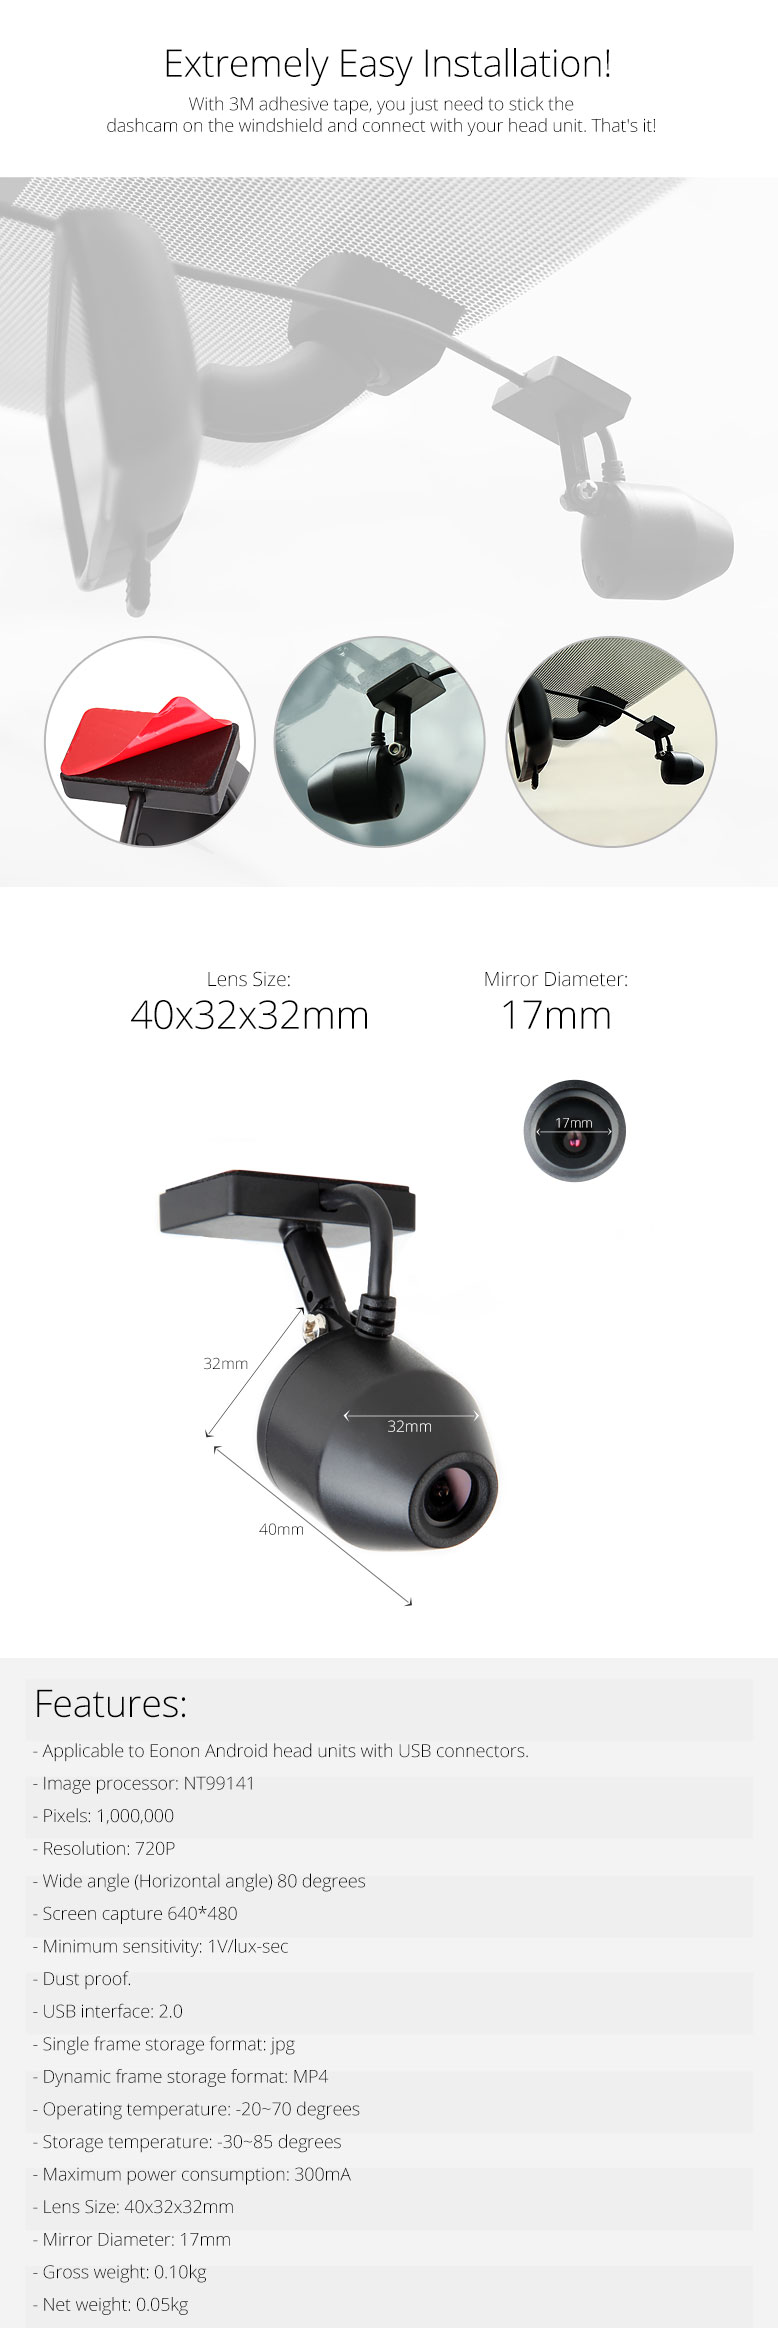 Eonon R0008 USB Type Camera for DVR Function-Waterproof, Anti-aging ...